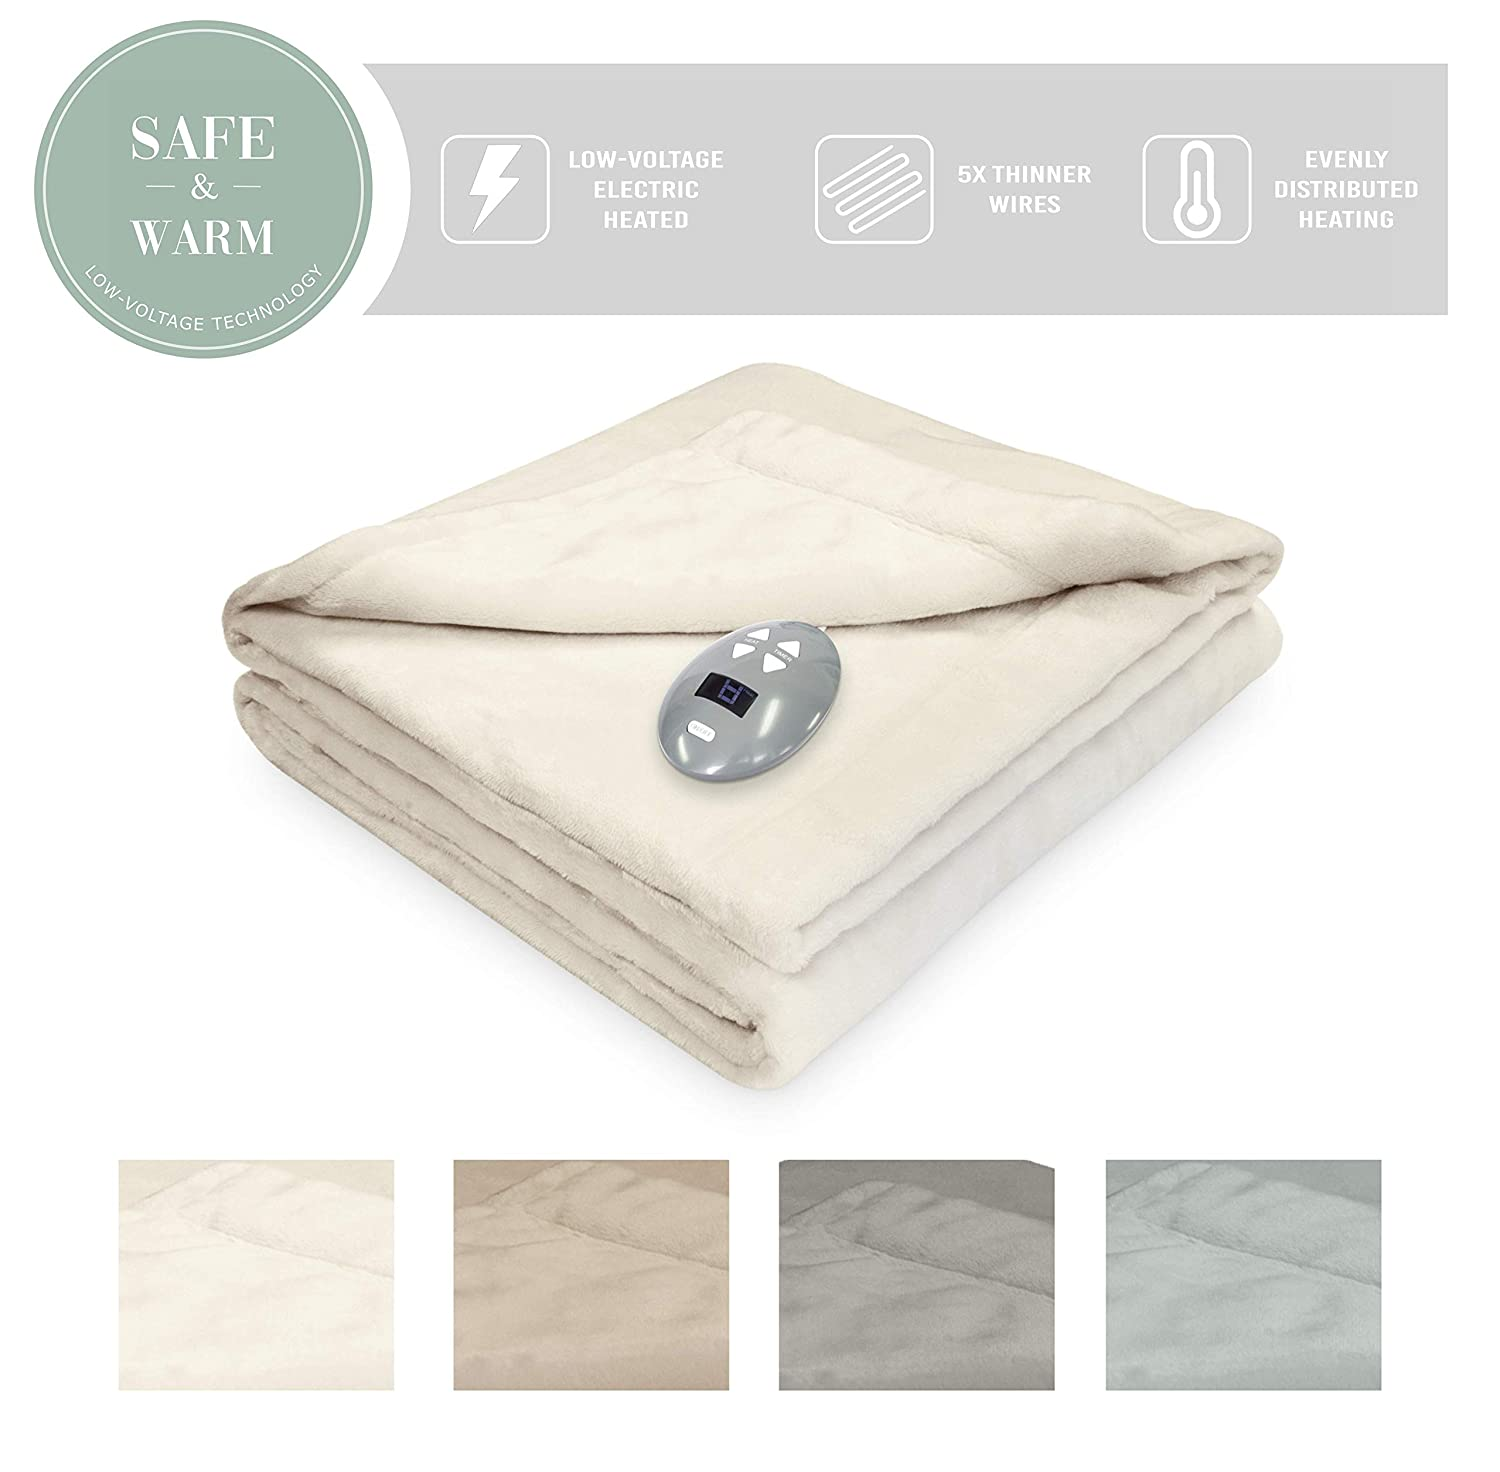 SoftHeat by Perfect Fit | Luxurious Velvet Plush Heated Electric Warming Blanket with Safe & Warm Low-Voltage Technology (Full, Gray) 856542